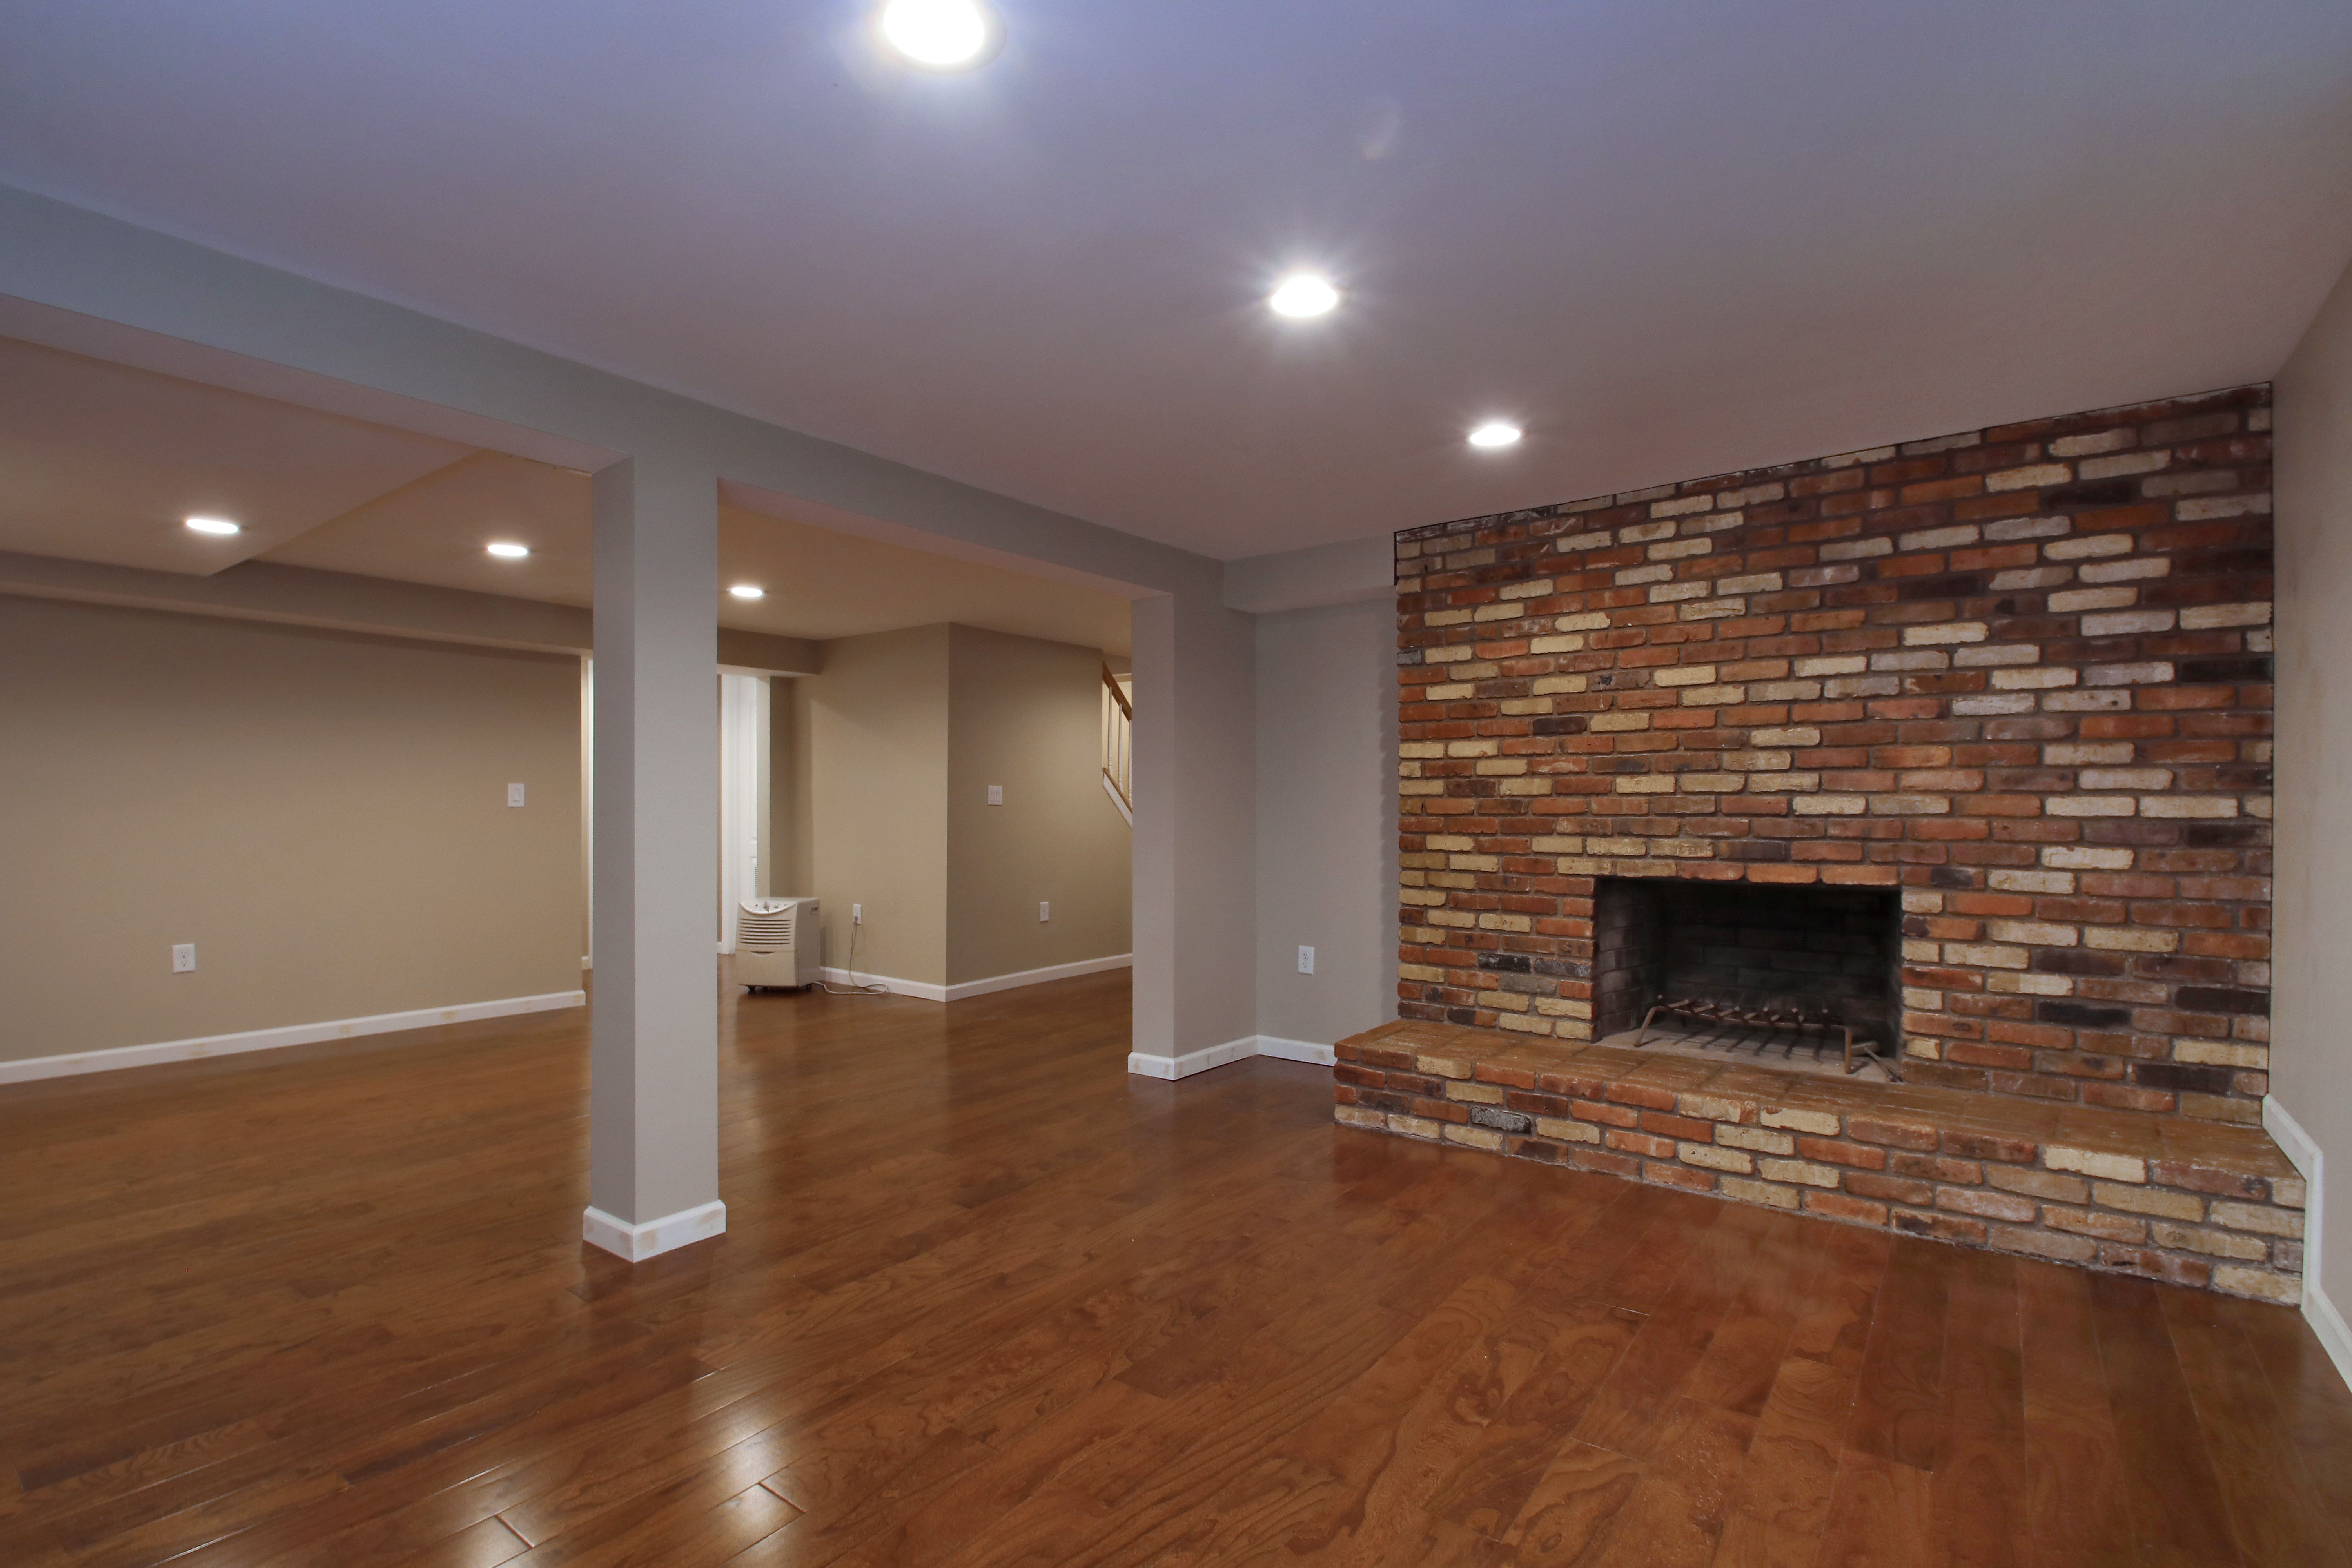 Basement Rec Room, Family Room, Utilities, Laundry and More!